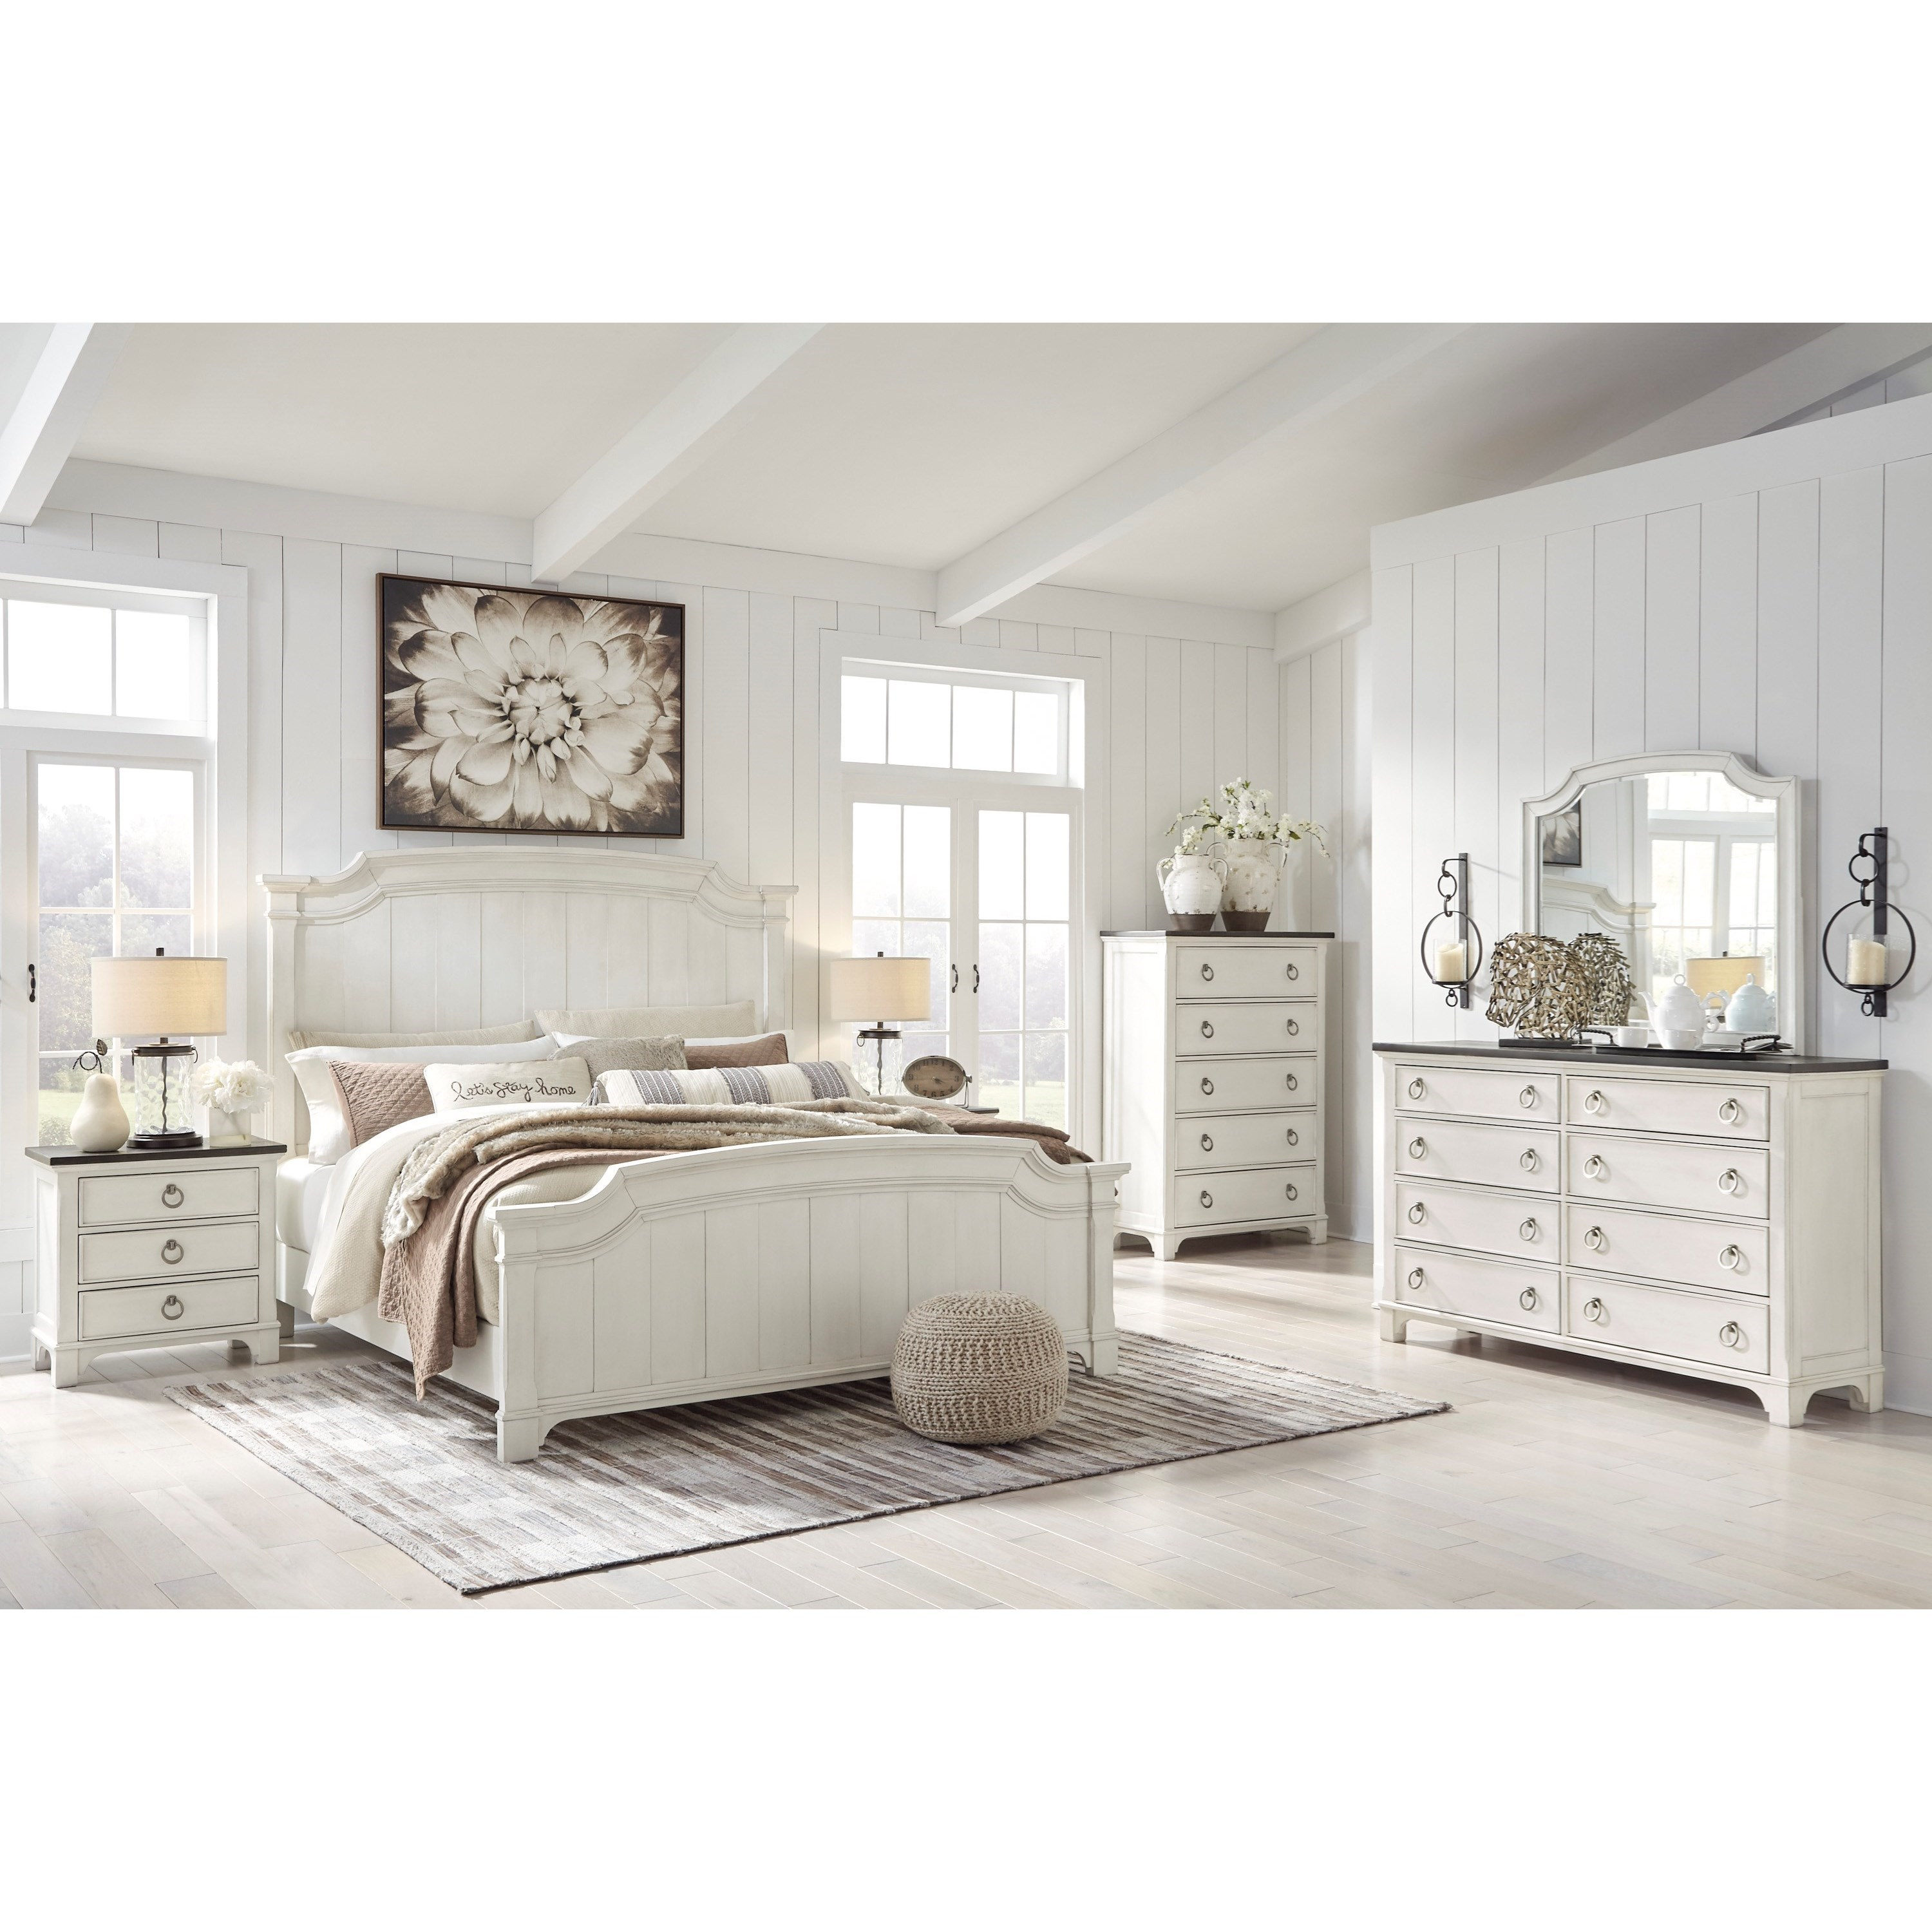 Nashbryn Queen Bedroom Group by Benchcraft at Northeast Factory Direct